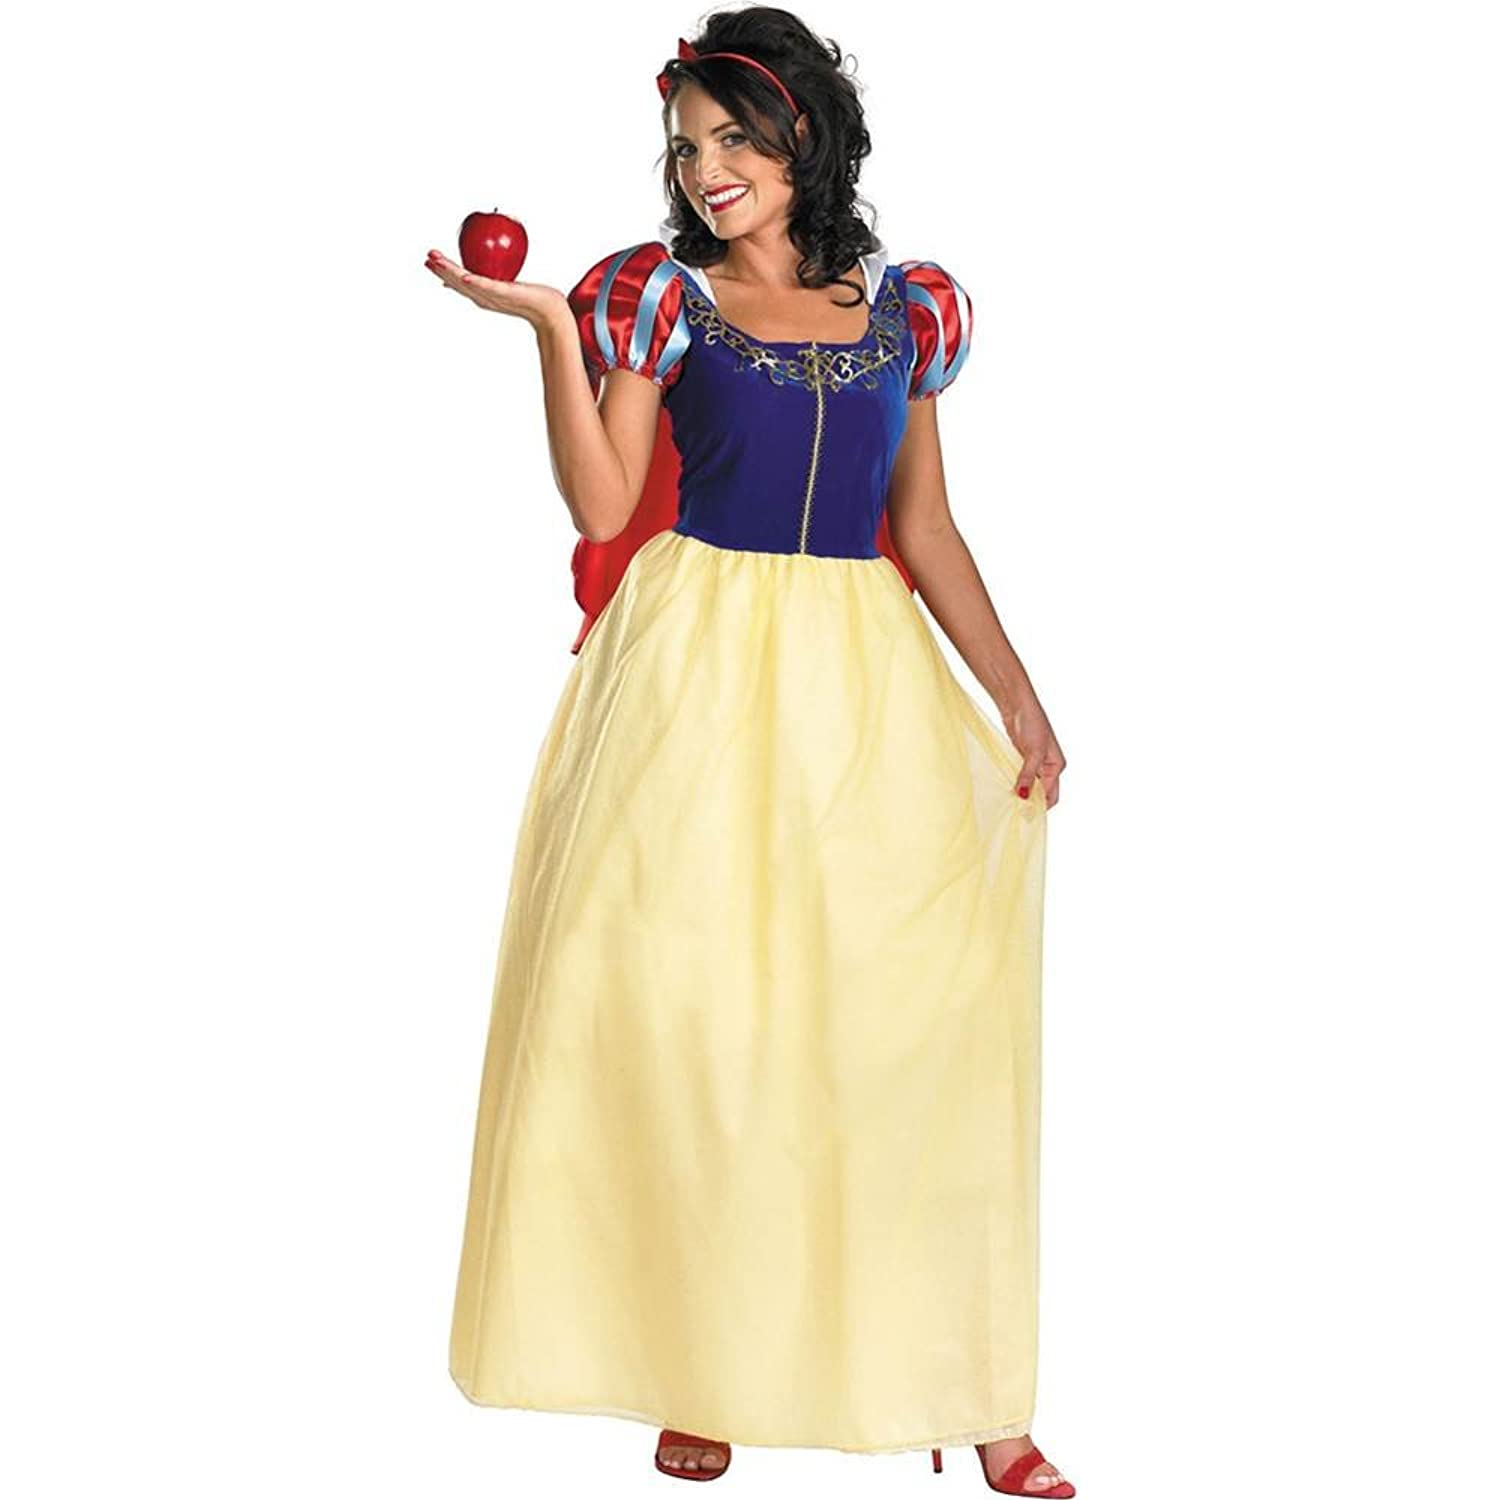 Disney princess gowns for adults - Disney Princess Gowns For Adults 42